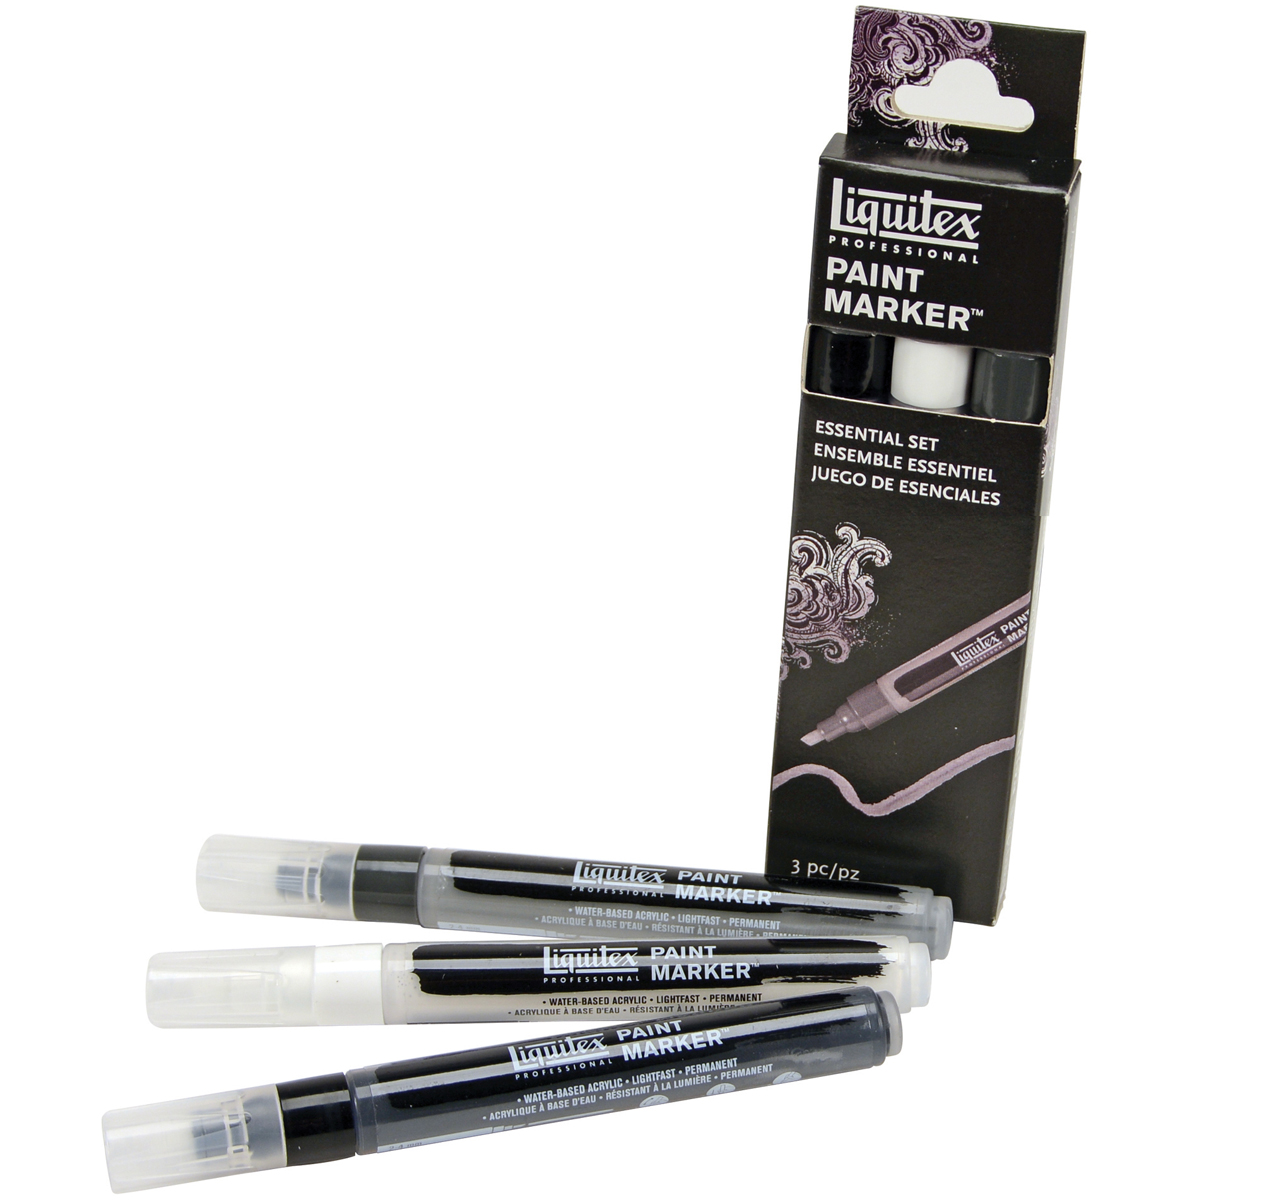 Liquitex Professional Paint Marker Set-Essential